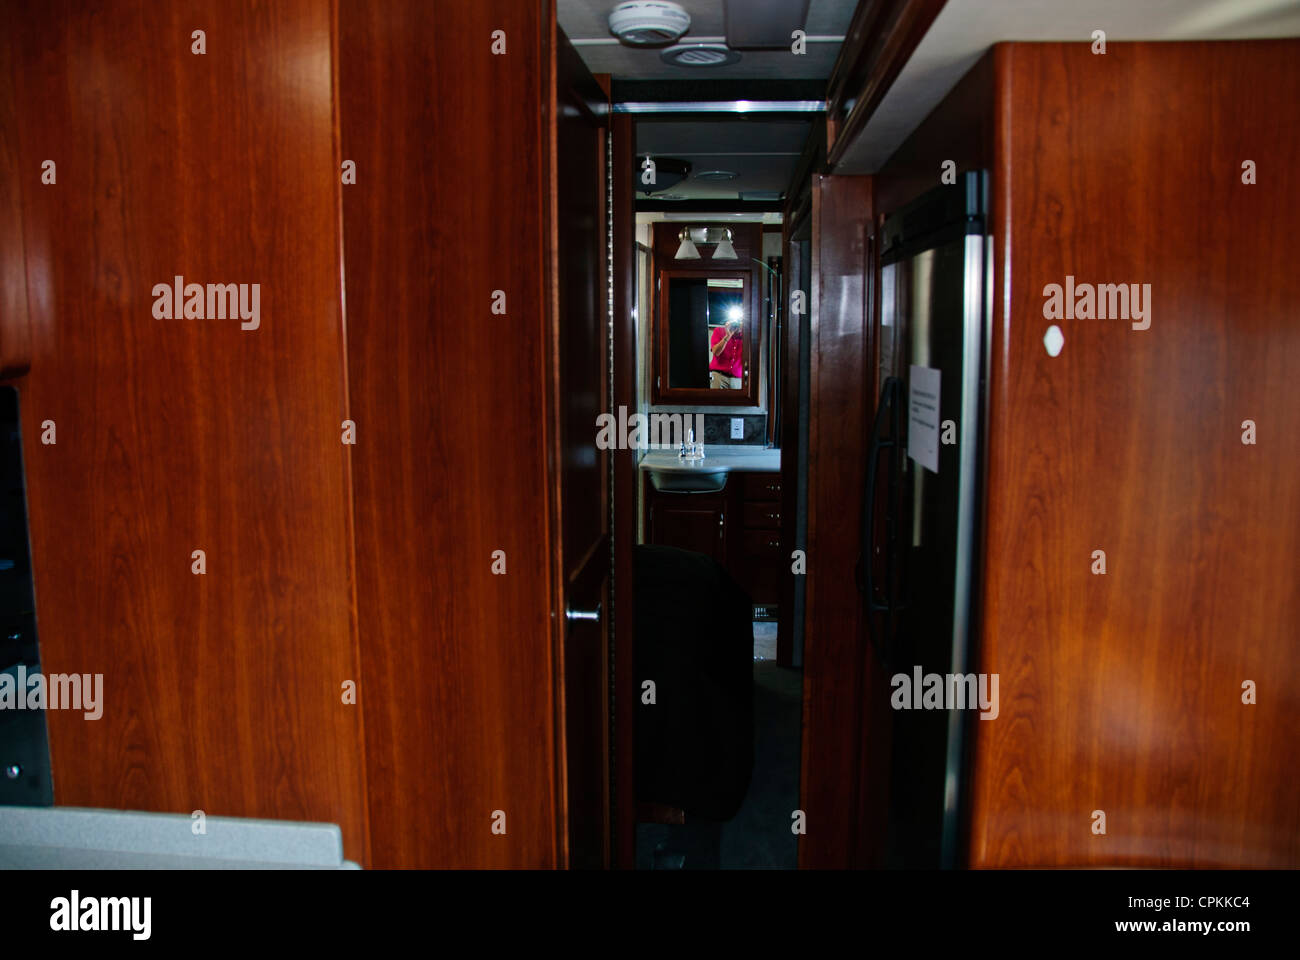 Motorhome Interior Kitchen Sleeping Arrangements Washroom Toilet  facilities Driving area Home from Home primarily in USA Canada. Motorhome Interior Kitchen Sleeping Arrangements Washroom Toilet